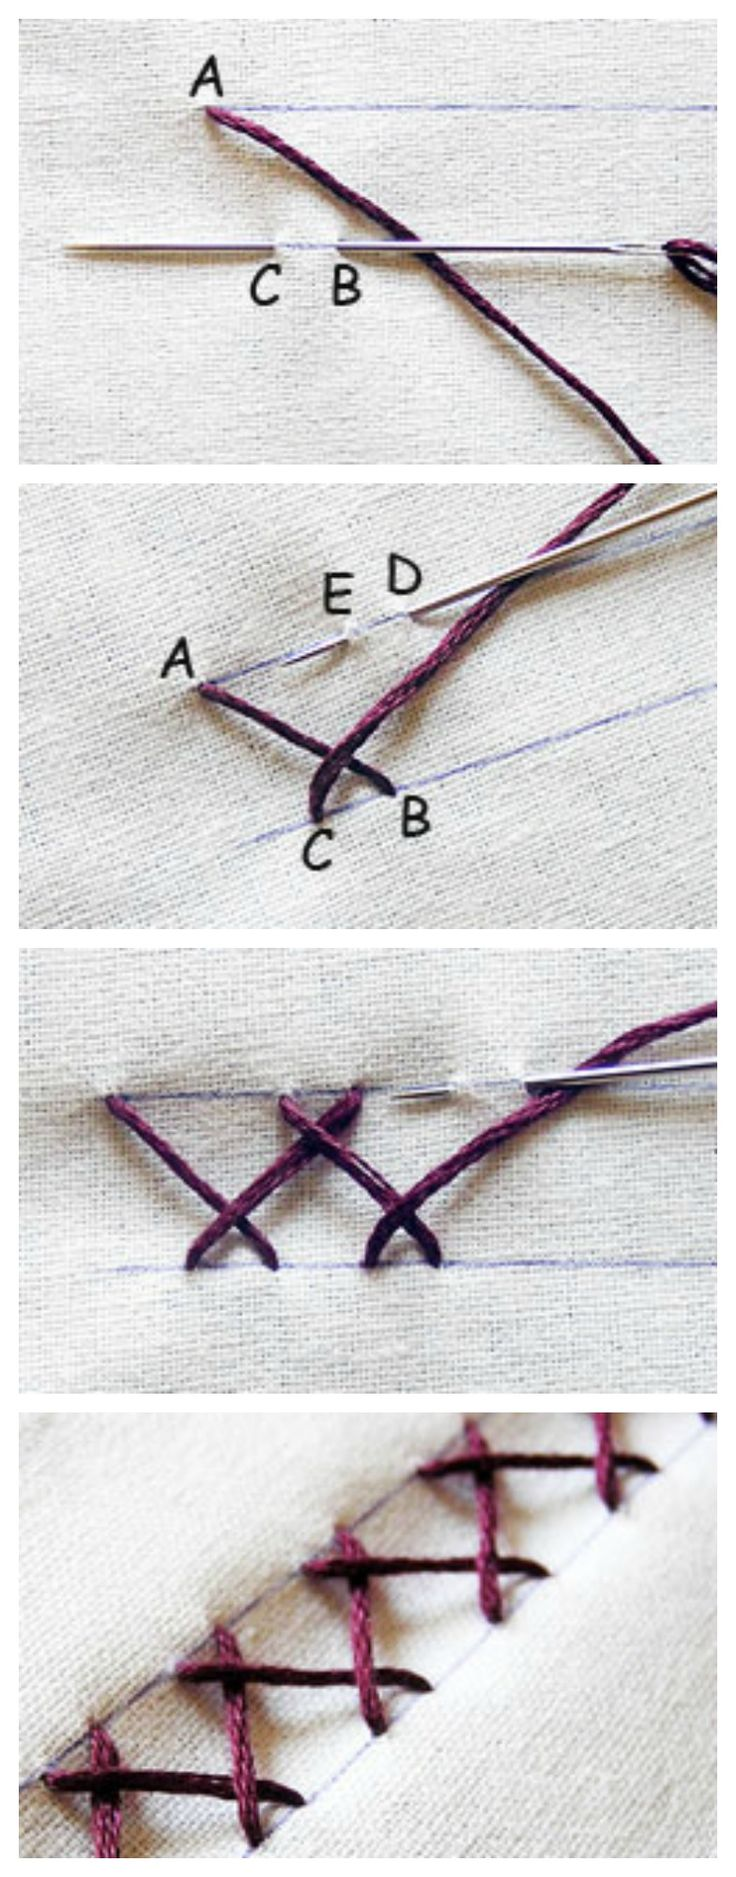 How to make a simple herringbone stitch #Embroidery #tutorial #DIY